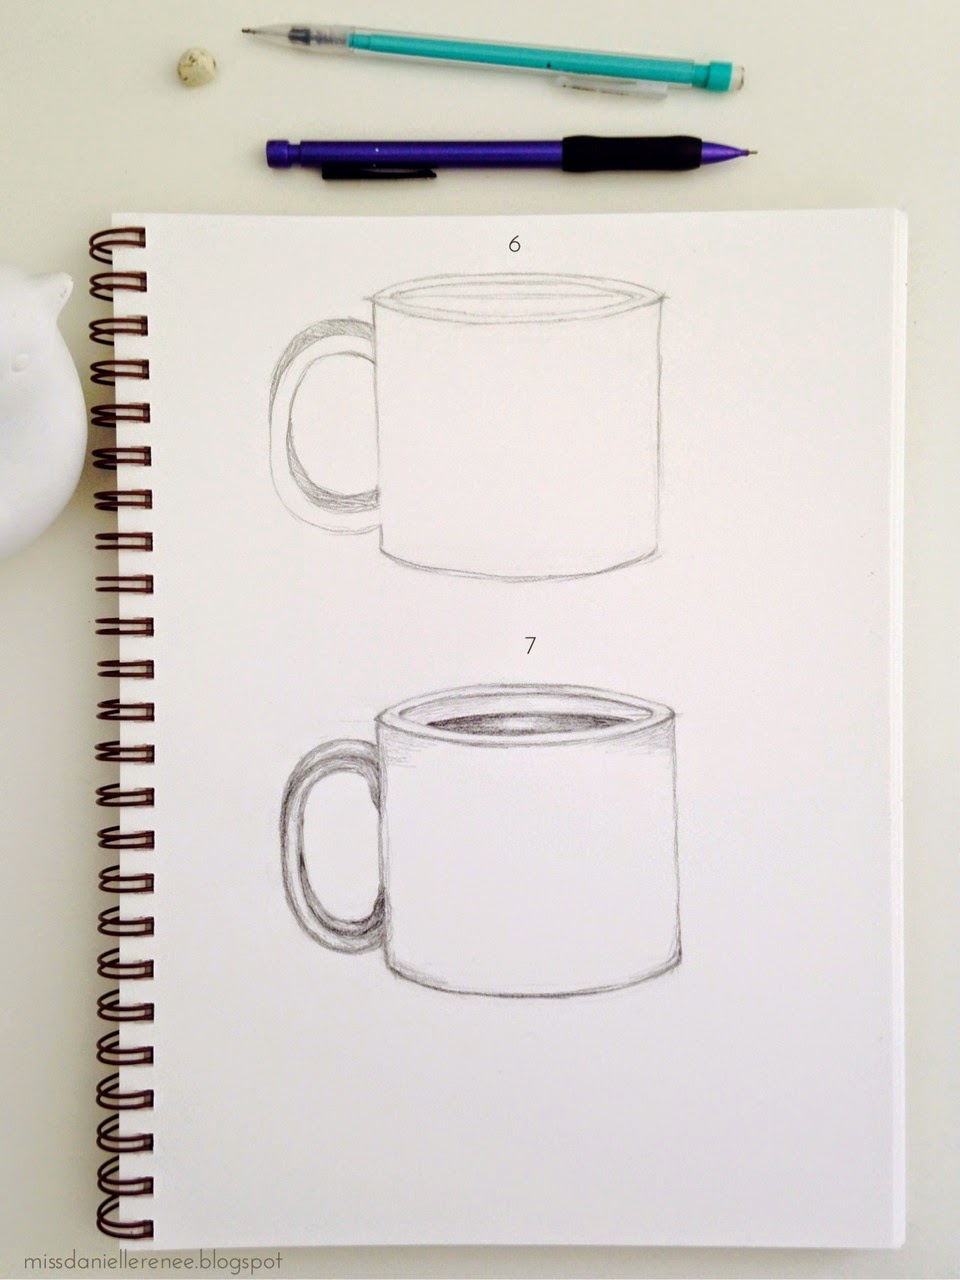 How to Draw a Coffee Mug step by step